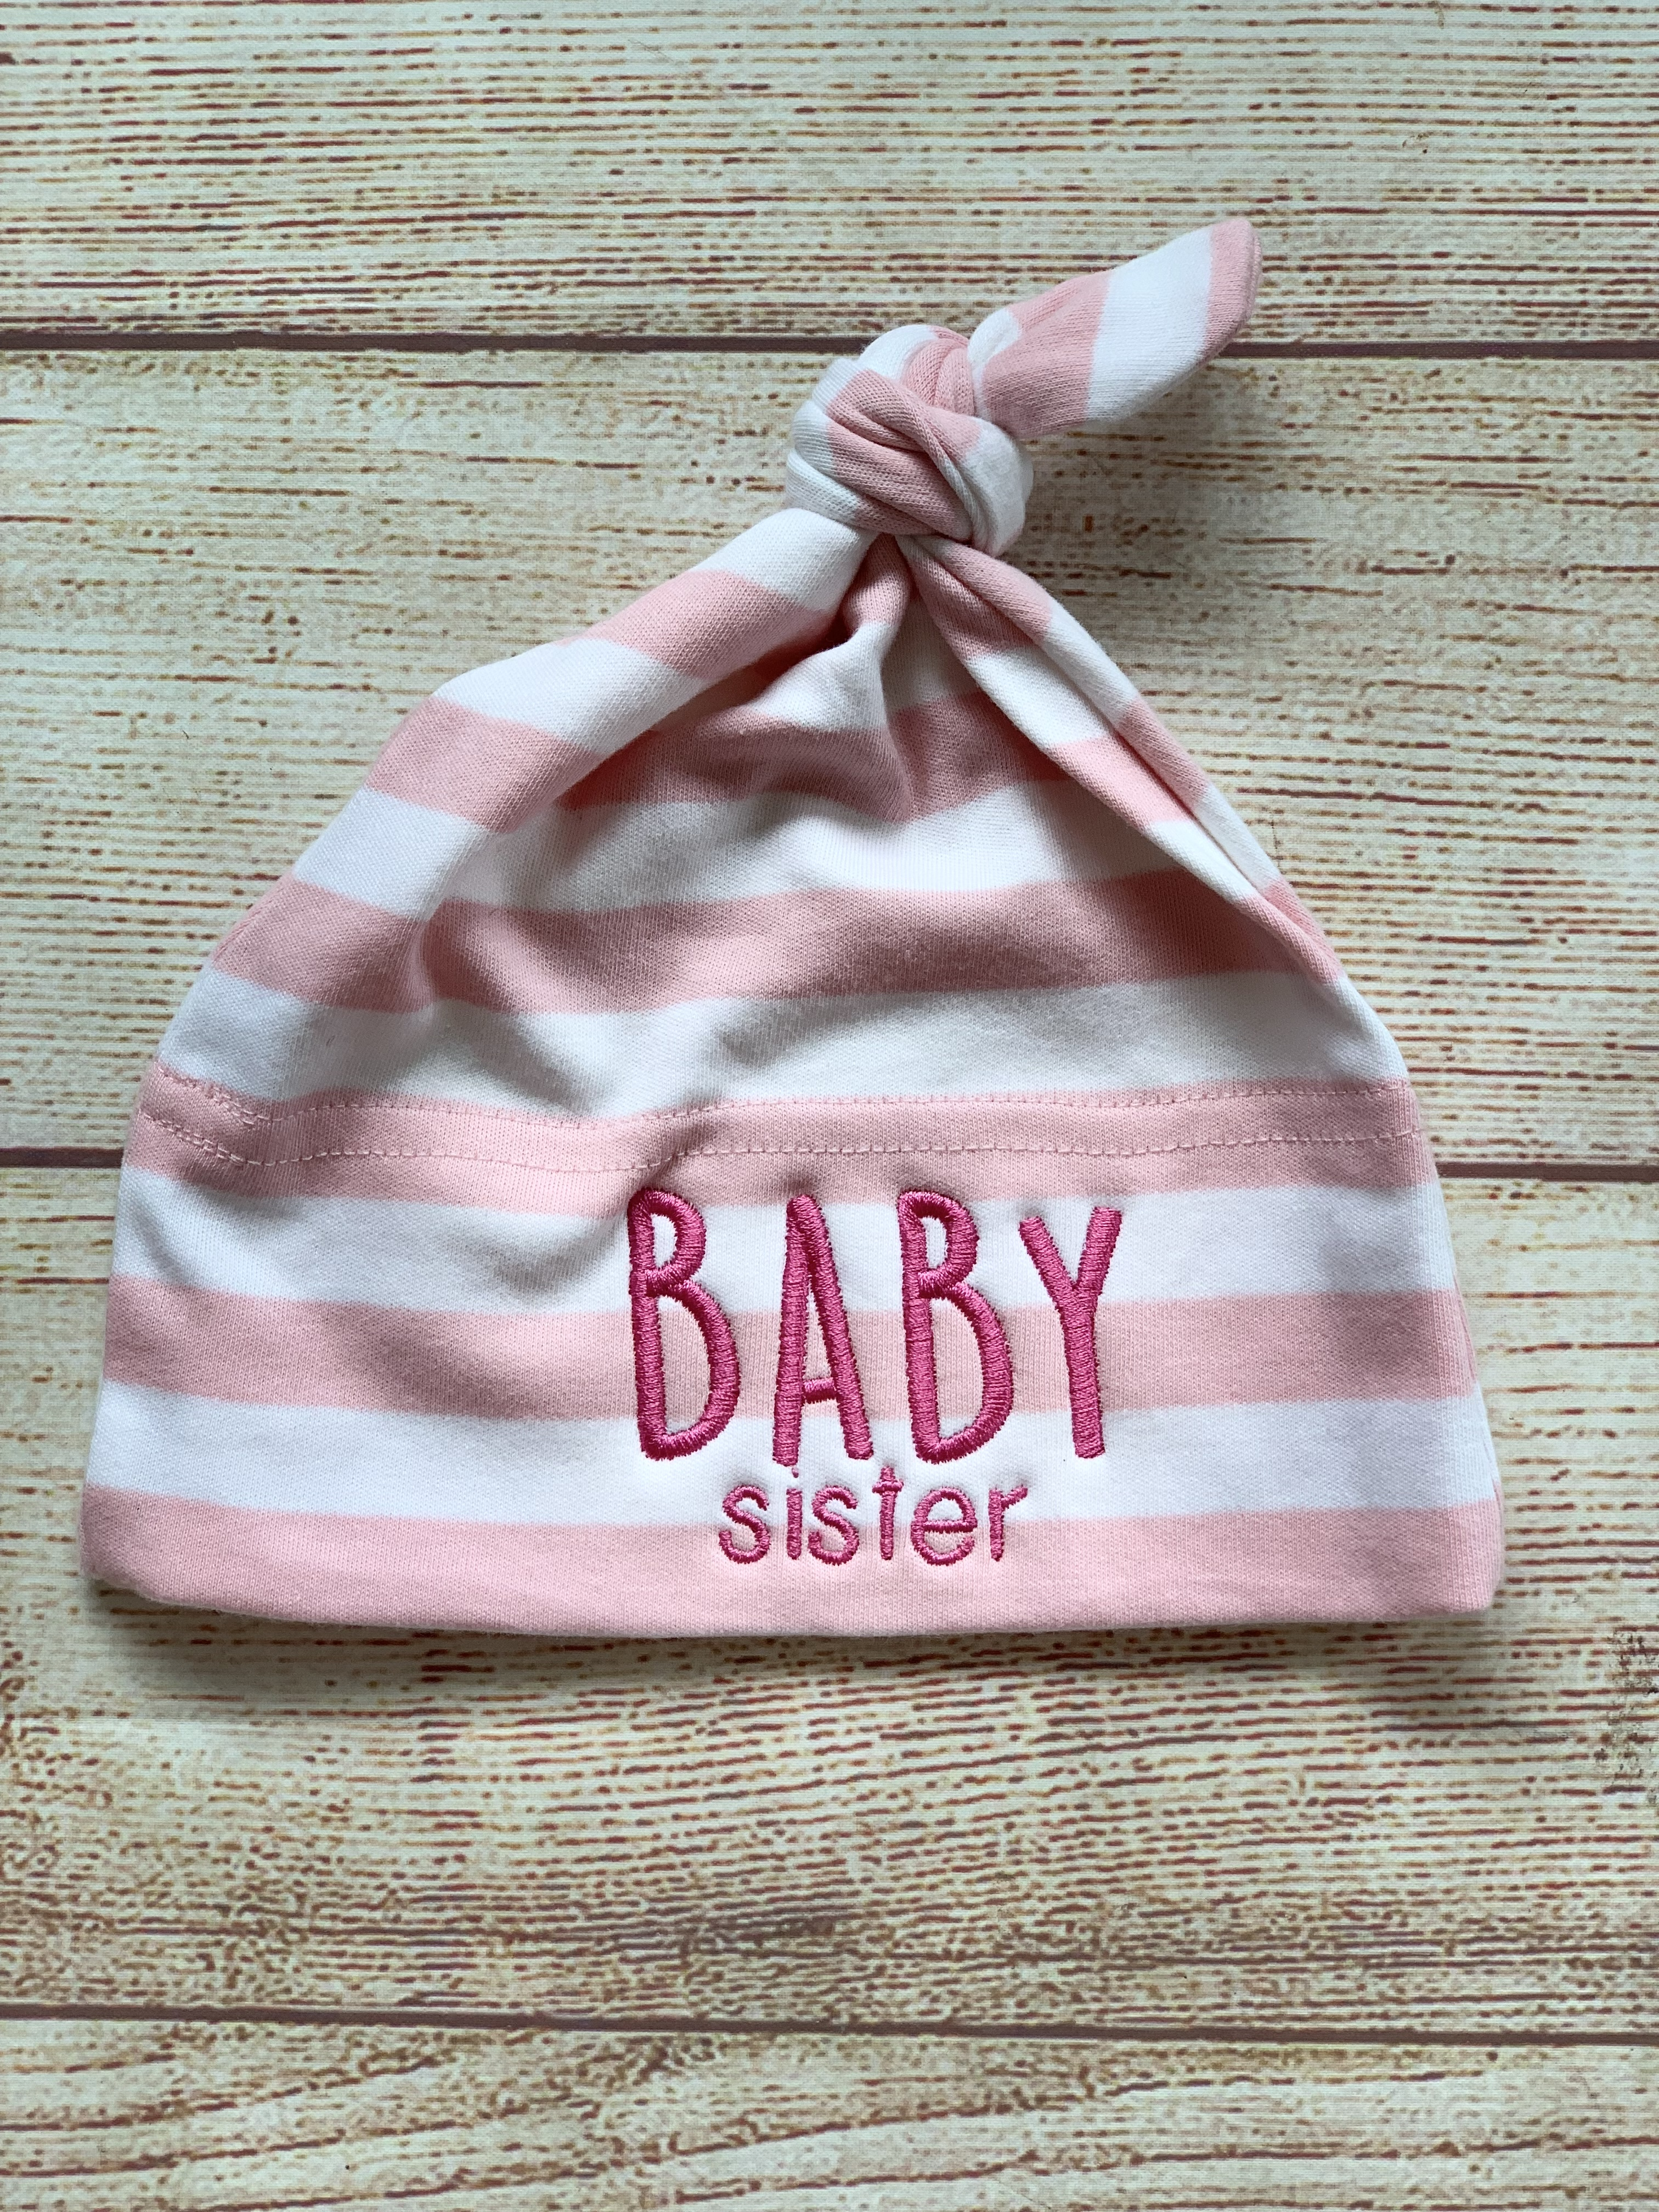 Baby Sister knot cap is the perfect little gift for the perfect little sister by Wicked Stitches Gifts